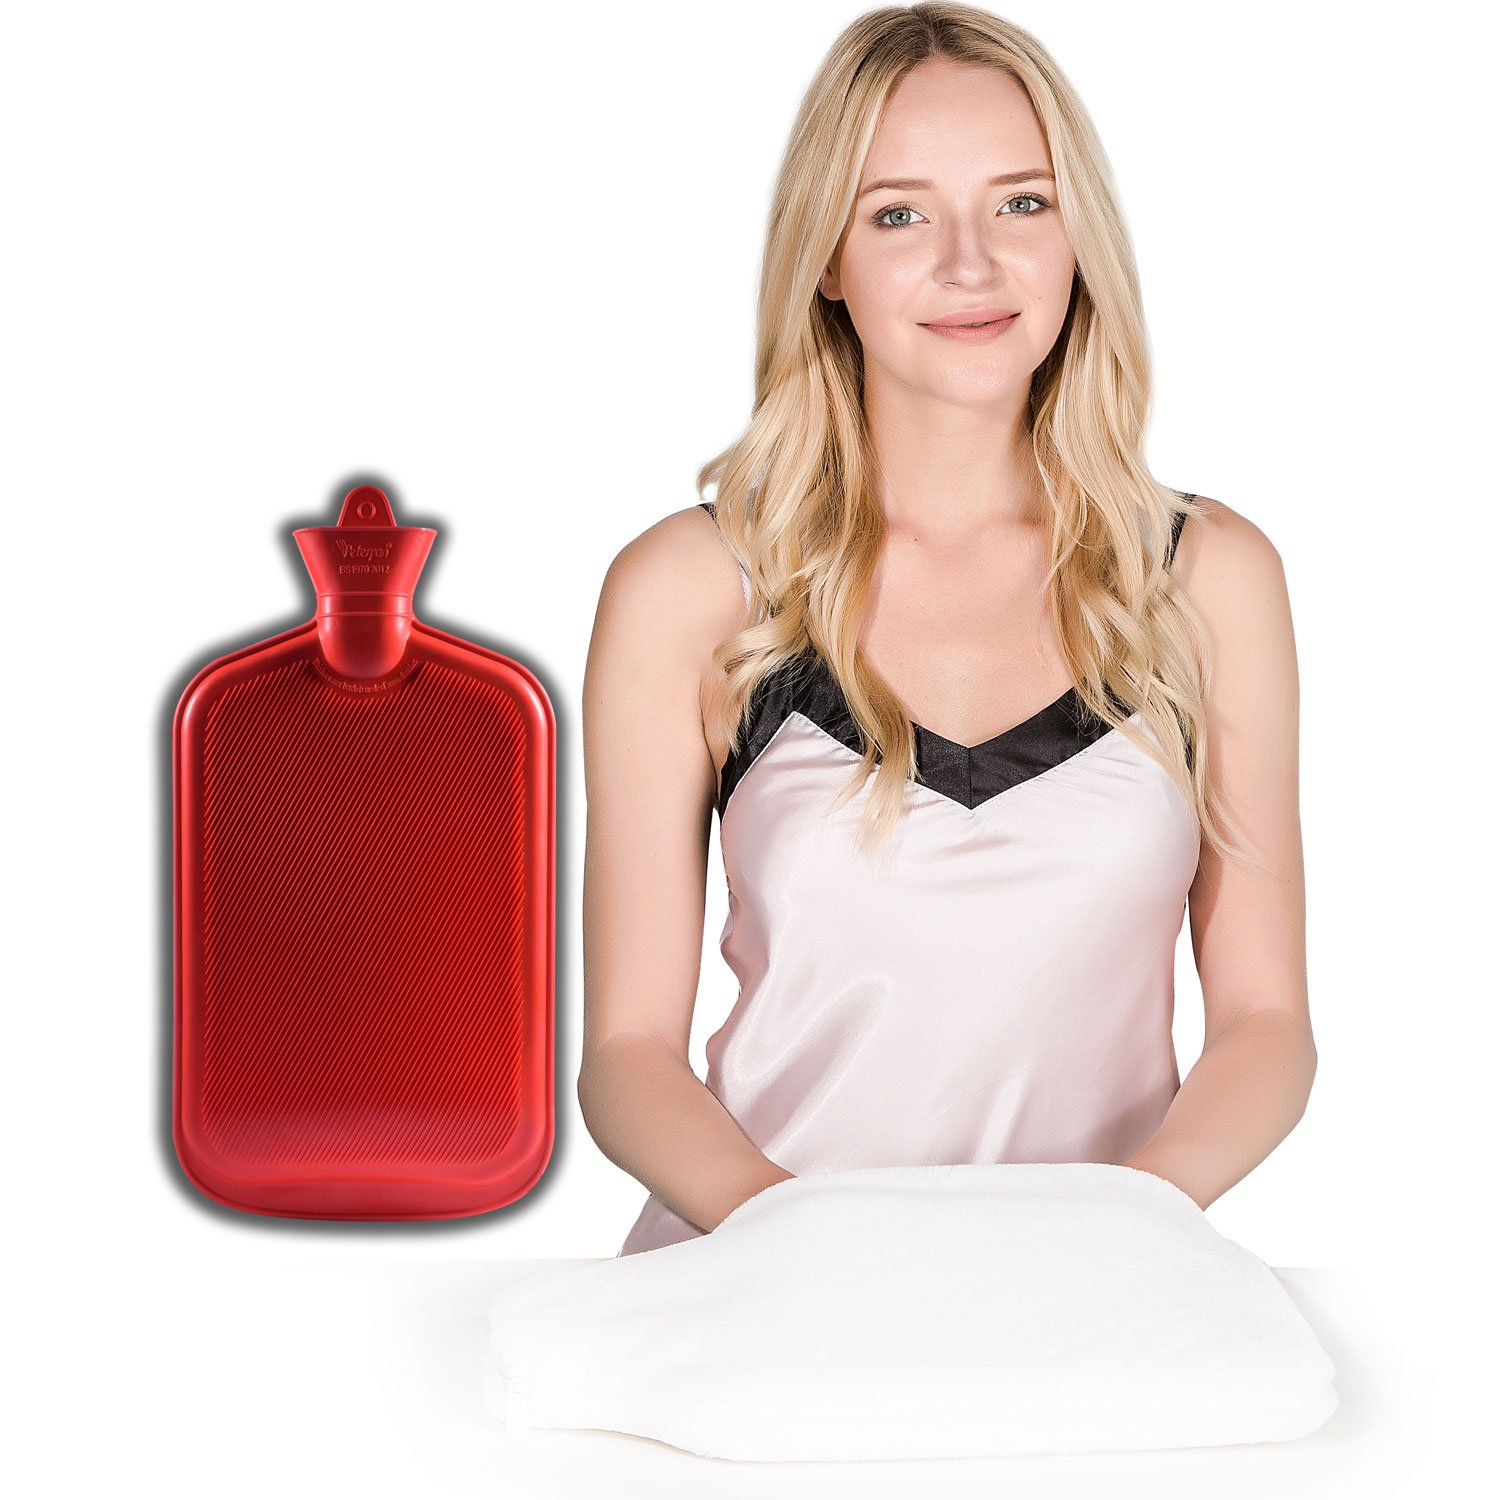 Peter Pan Classic Rubber Hot Water Bag,Hot Water Bottle Cover with Pocket, XXX-Large Size, Now it Has a Pocket to Wram Your Chilled Hands and Feet, 3.2 Quart Capacity,White